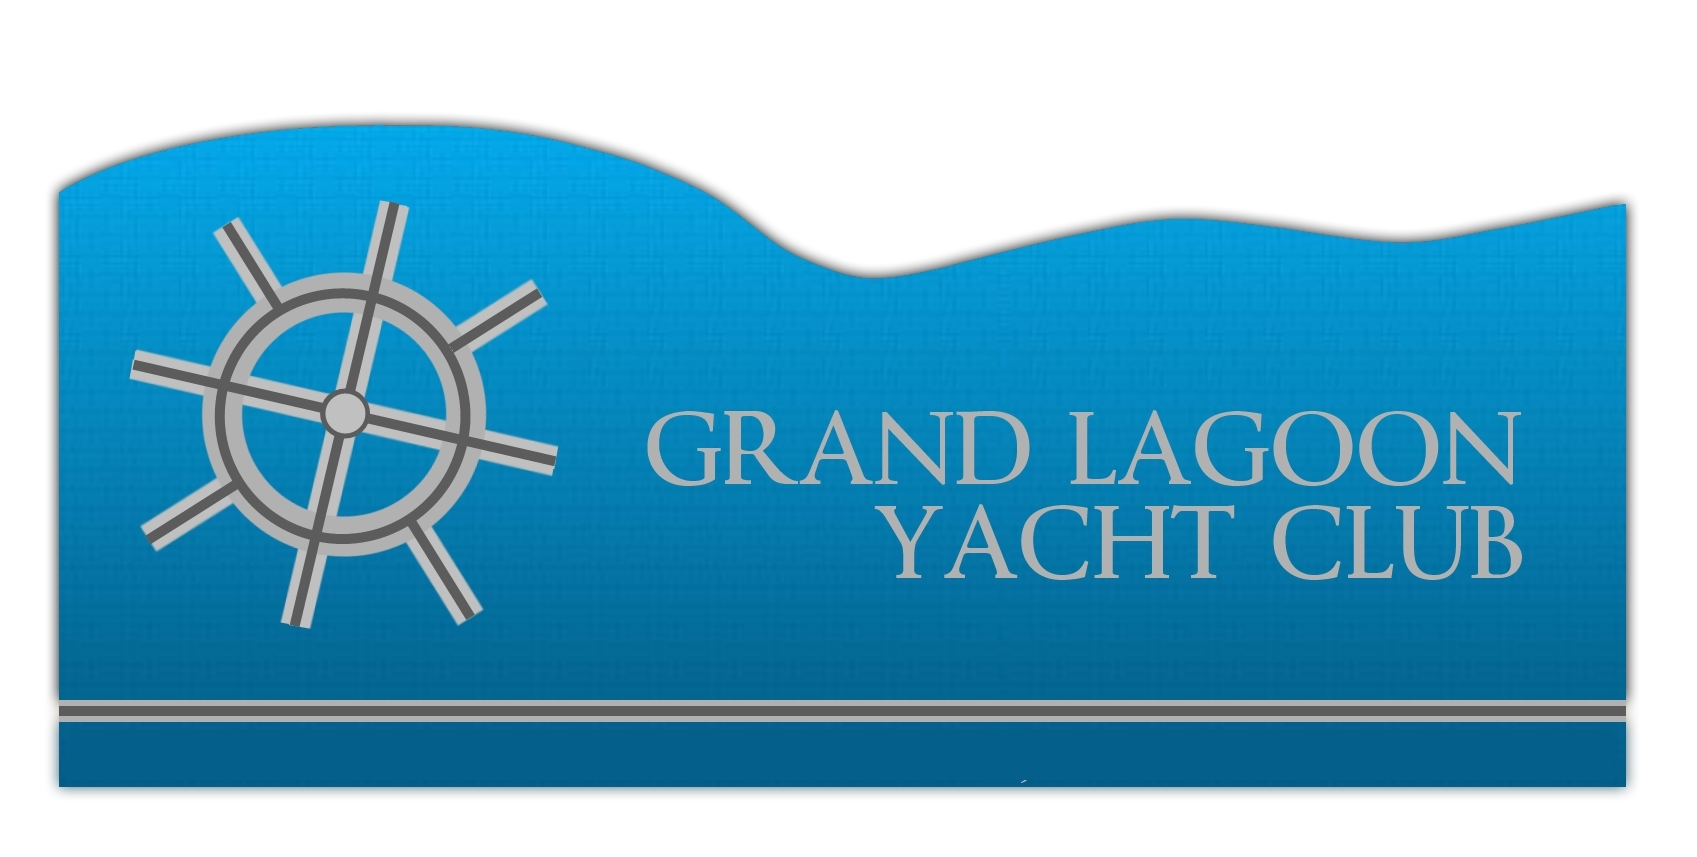 Grand Lagoon Yacht Club